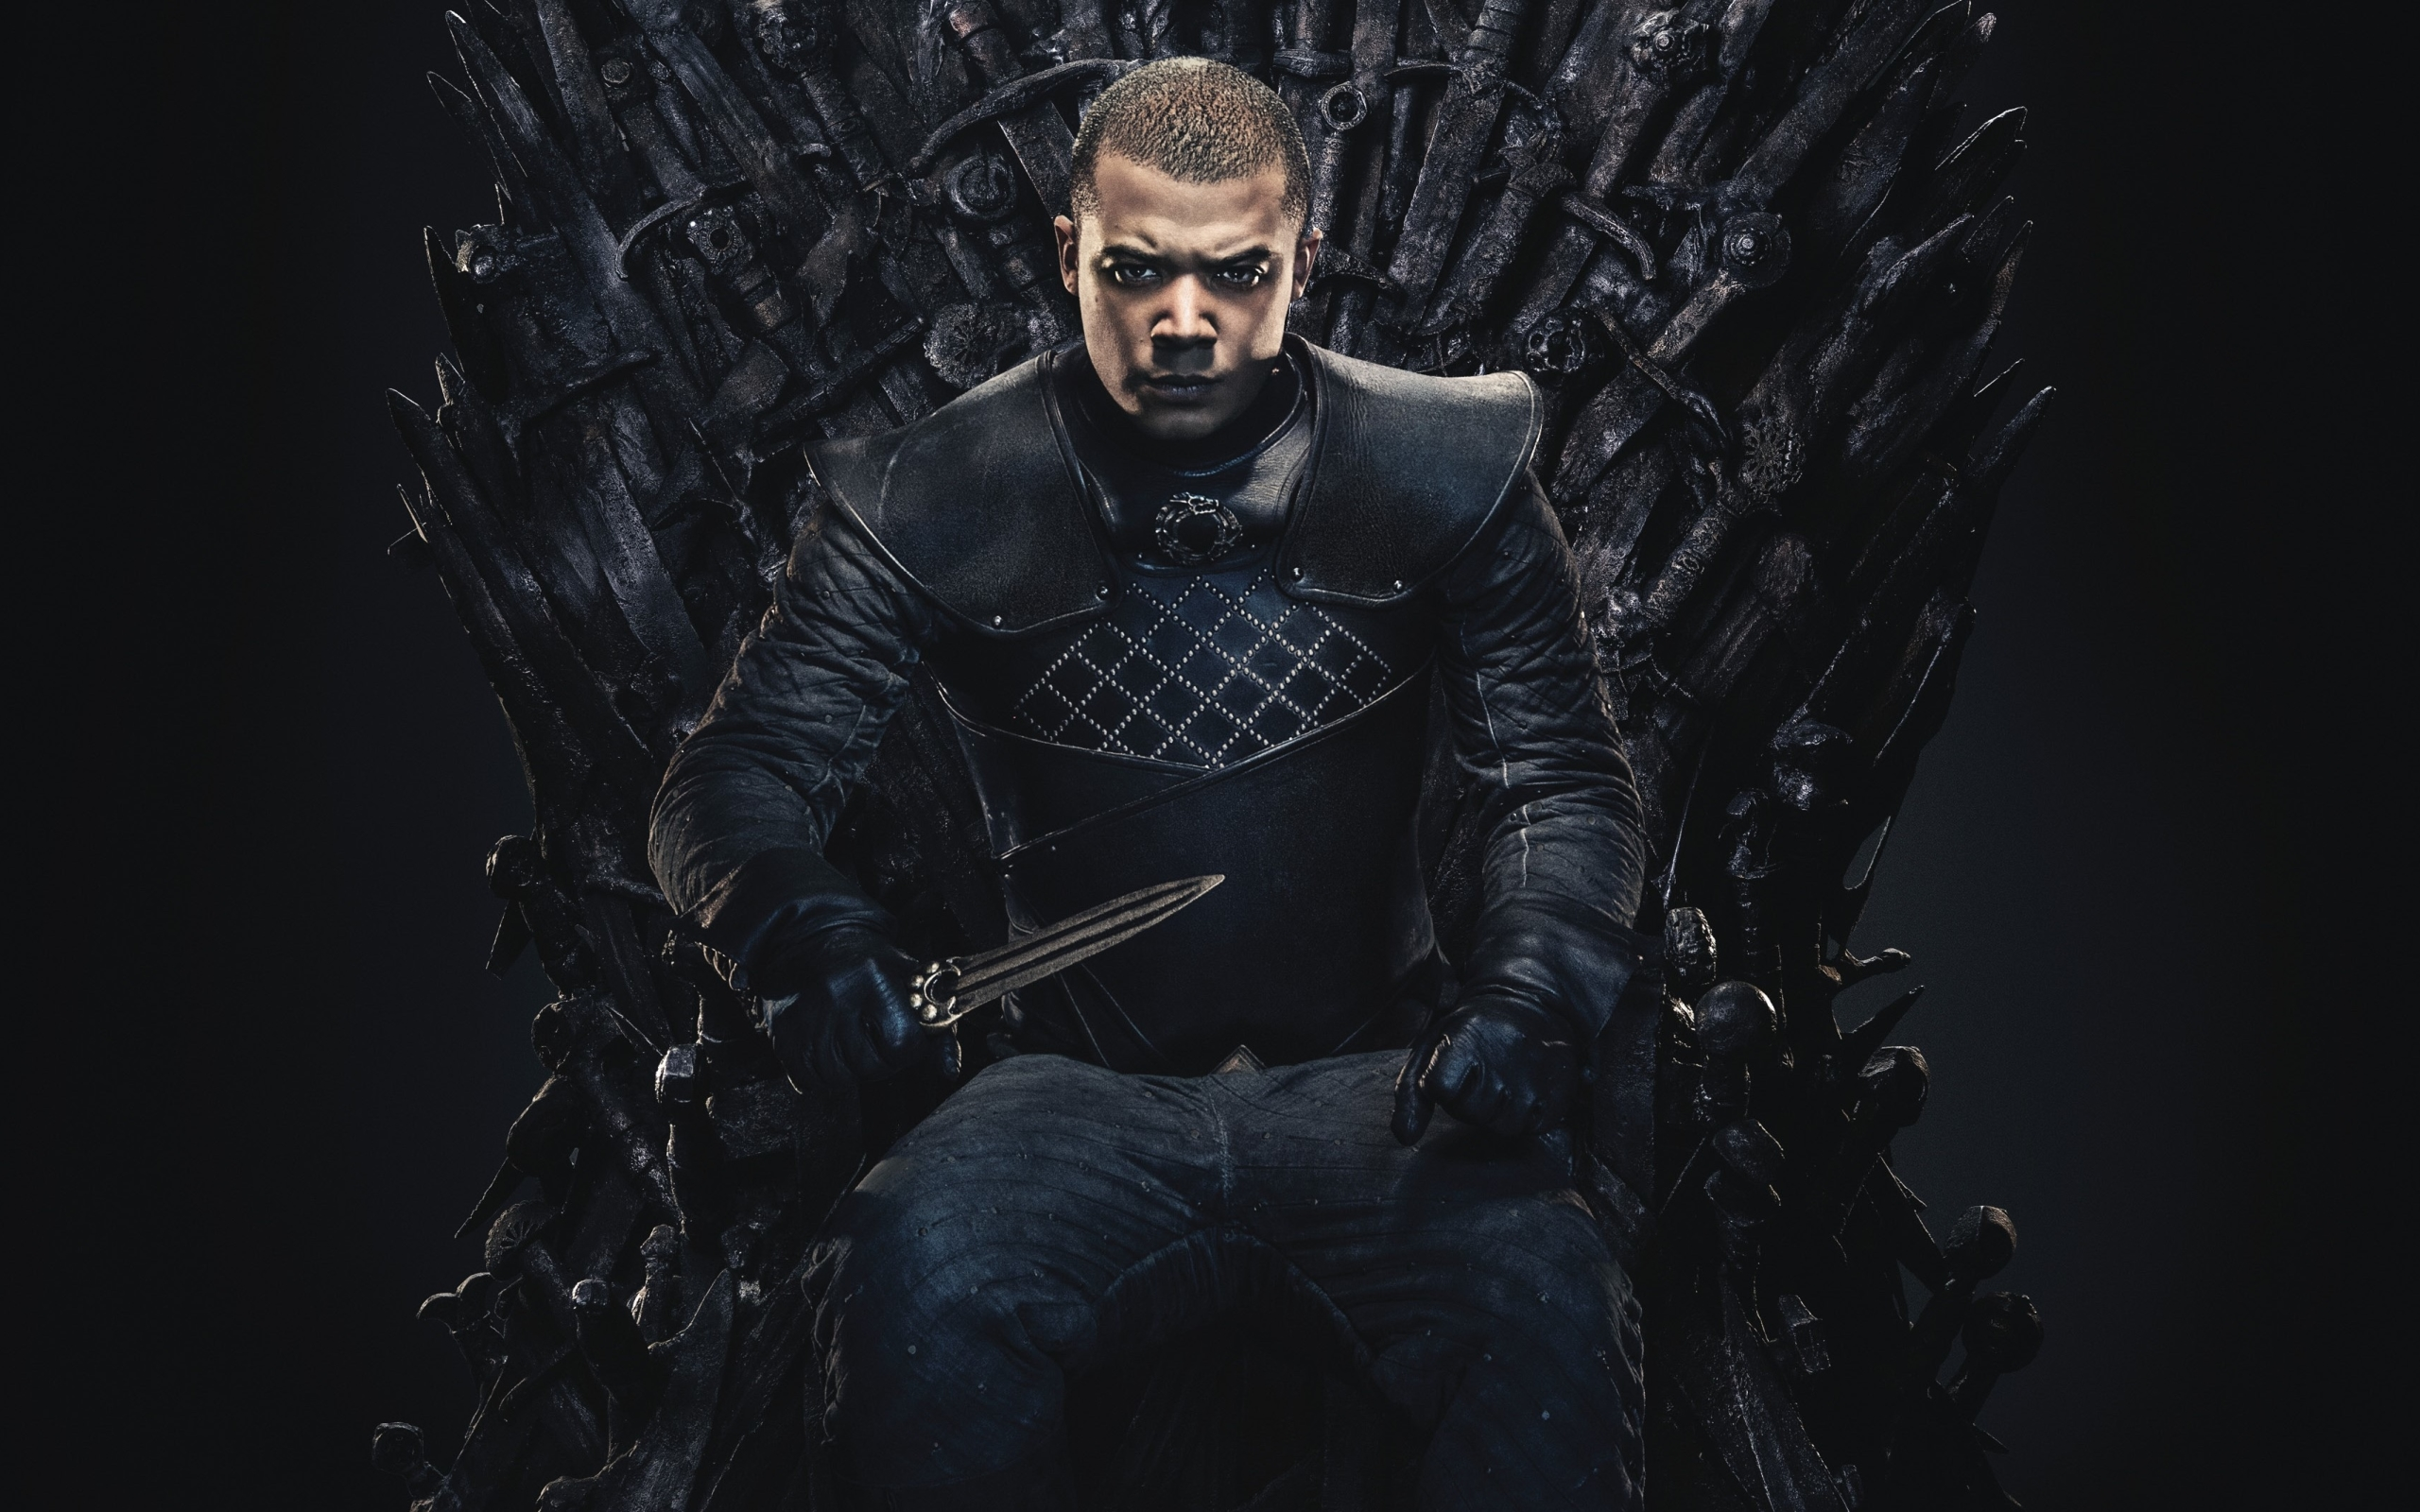 Wallpaper Of Grey Worm Jacob Anderson Game Of Thrones Throne